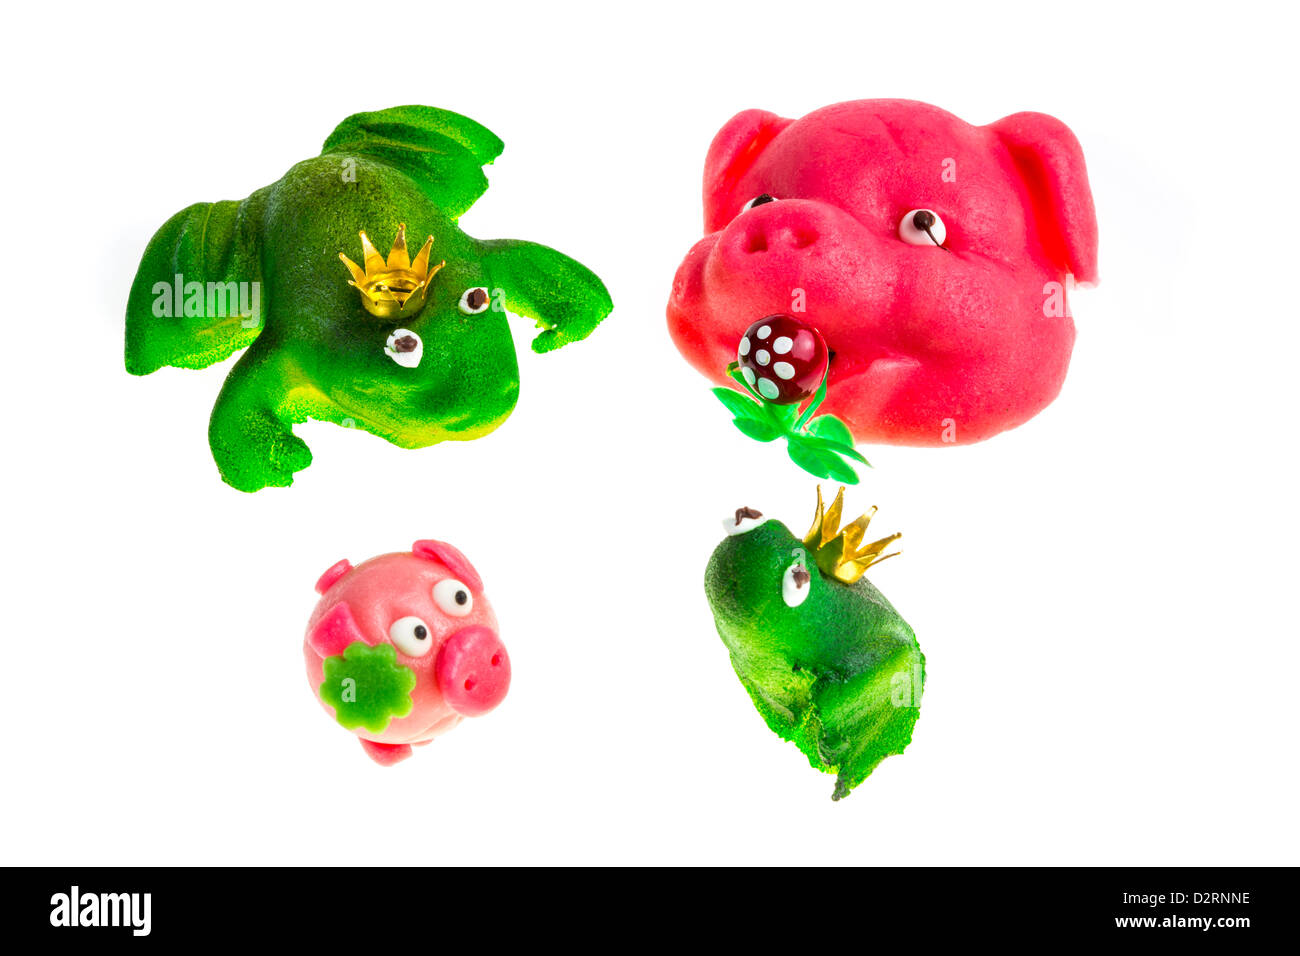 Little marzipan figures pink pork face green frog king lucky little marzipan figures pink pork face green frog king lucky charm symbols biocorpaavc Image collections